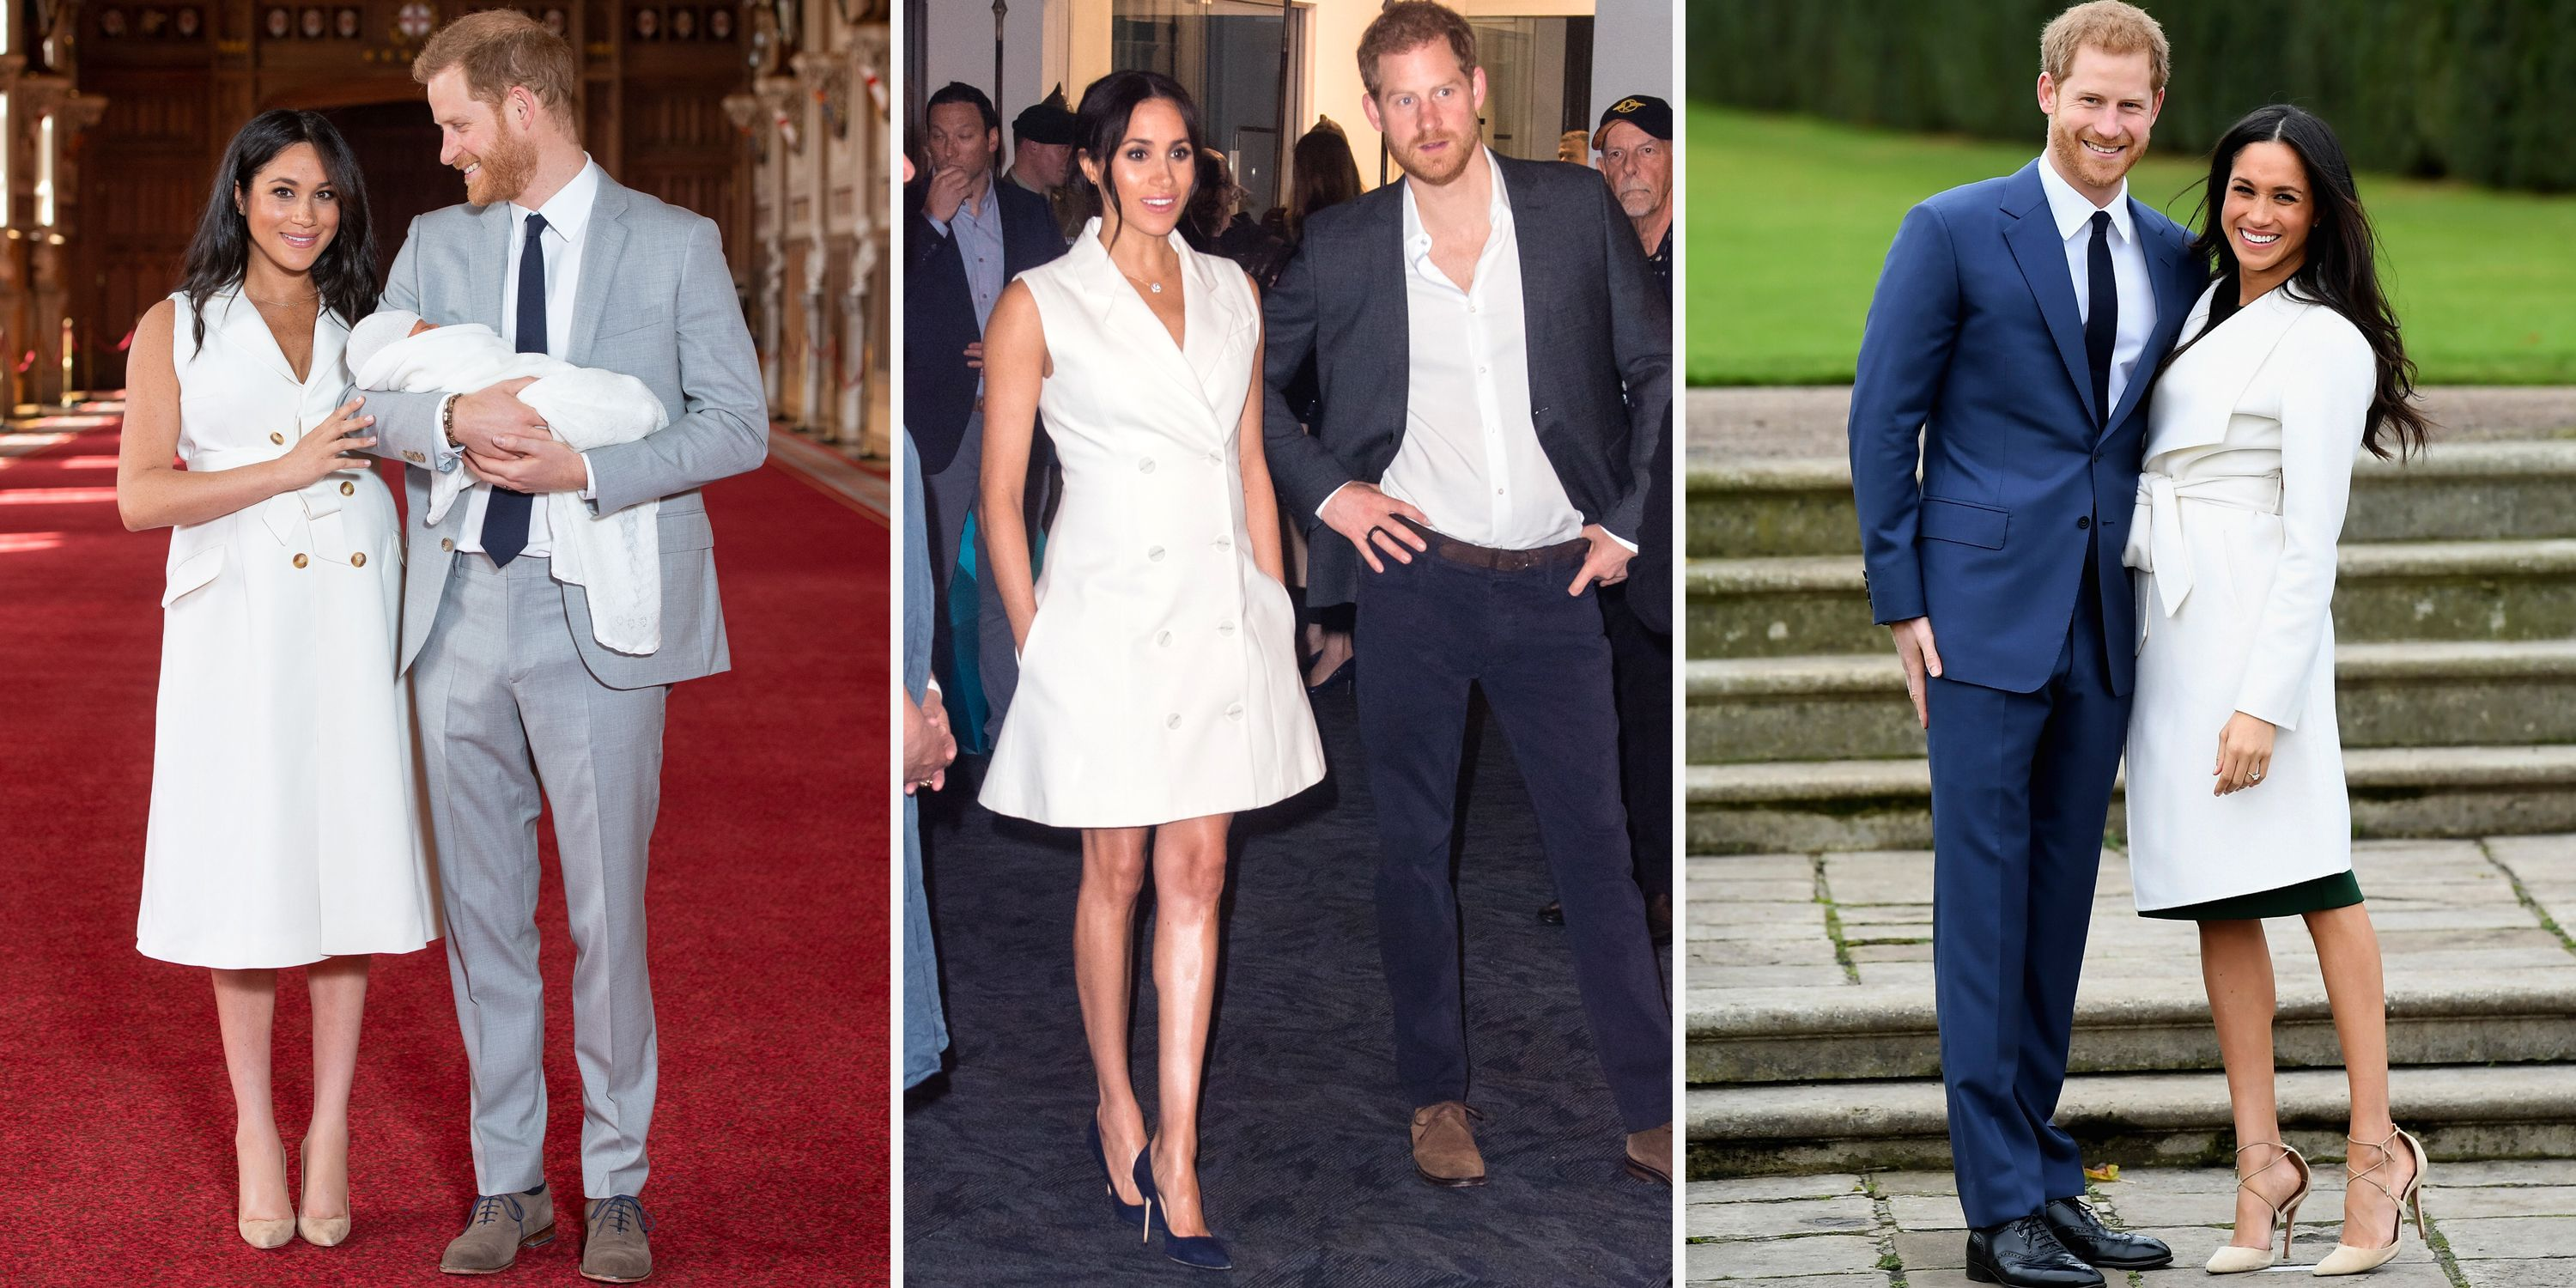 97d626cde010f Why Meghan Markle's Trench Dress at the Royal Baby's Debut Is Significant